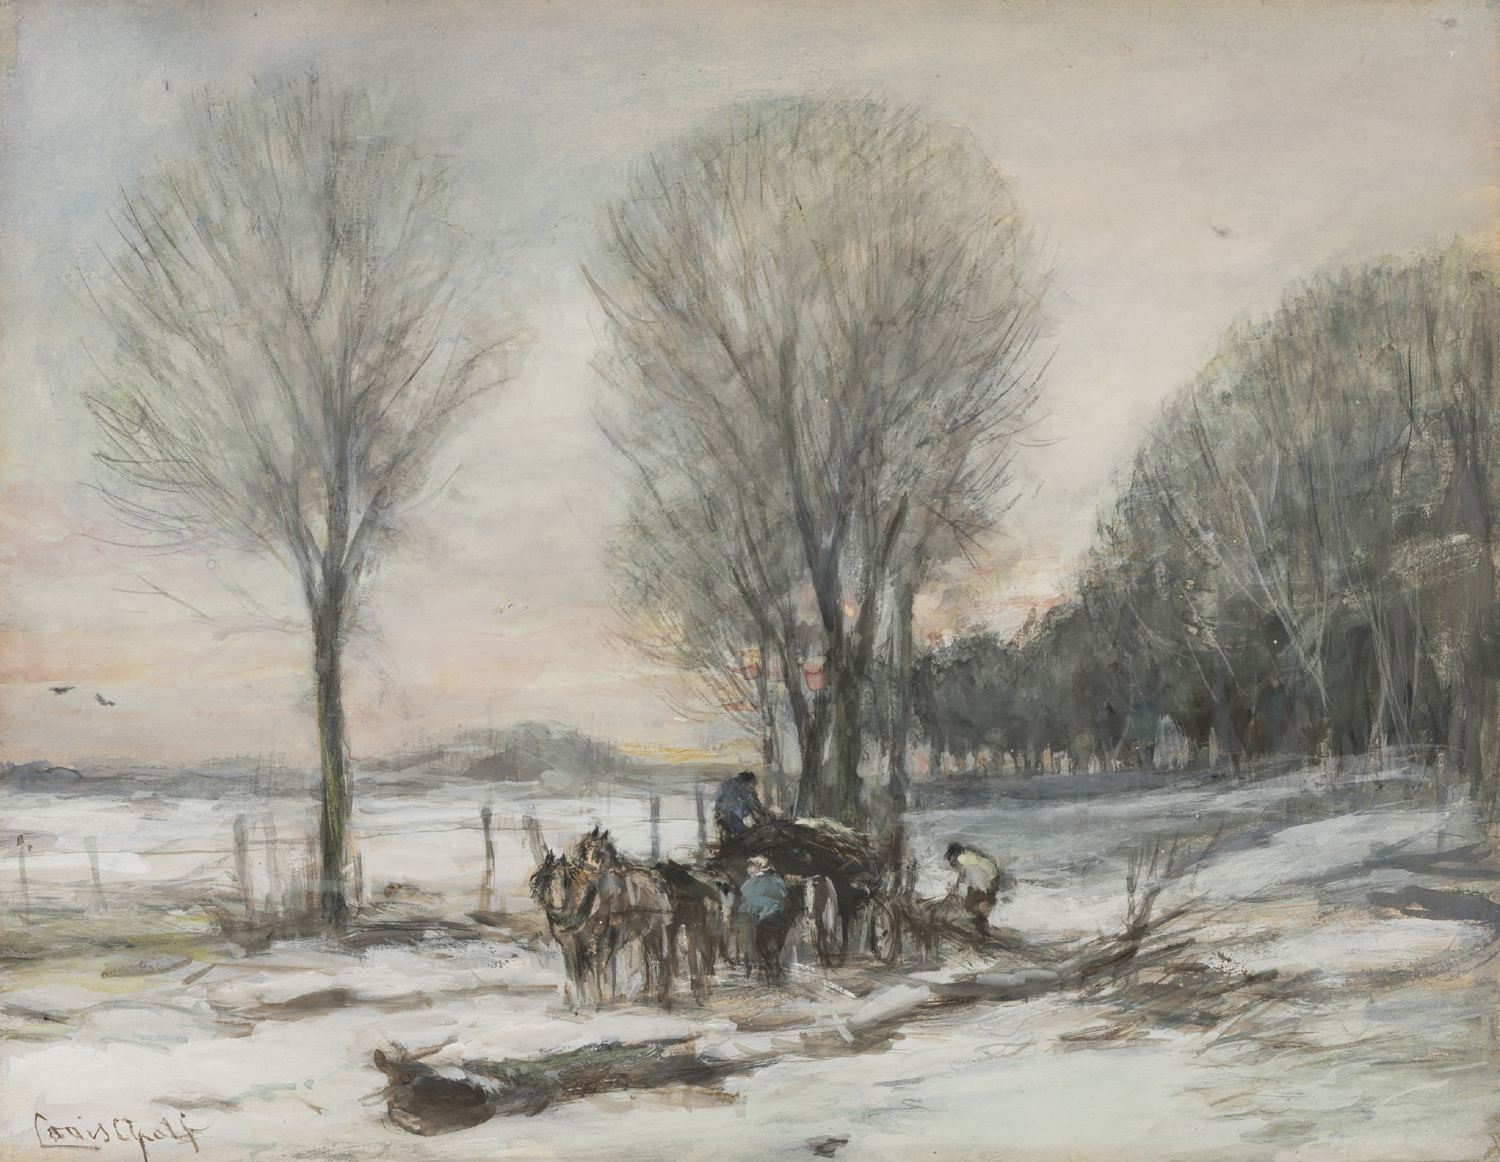 Louis Apol | Loading a horse-drawn cart in a snow covered landscape| Kunsthandel Bies | Bies Gallery